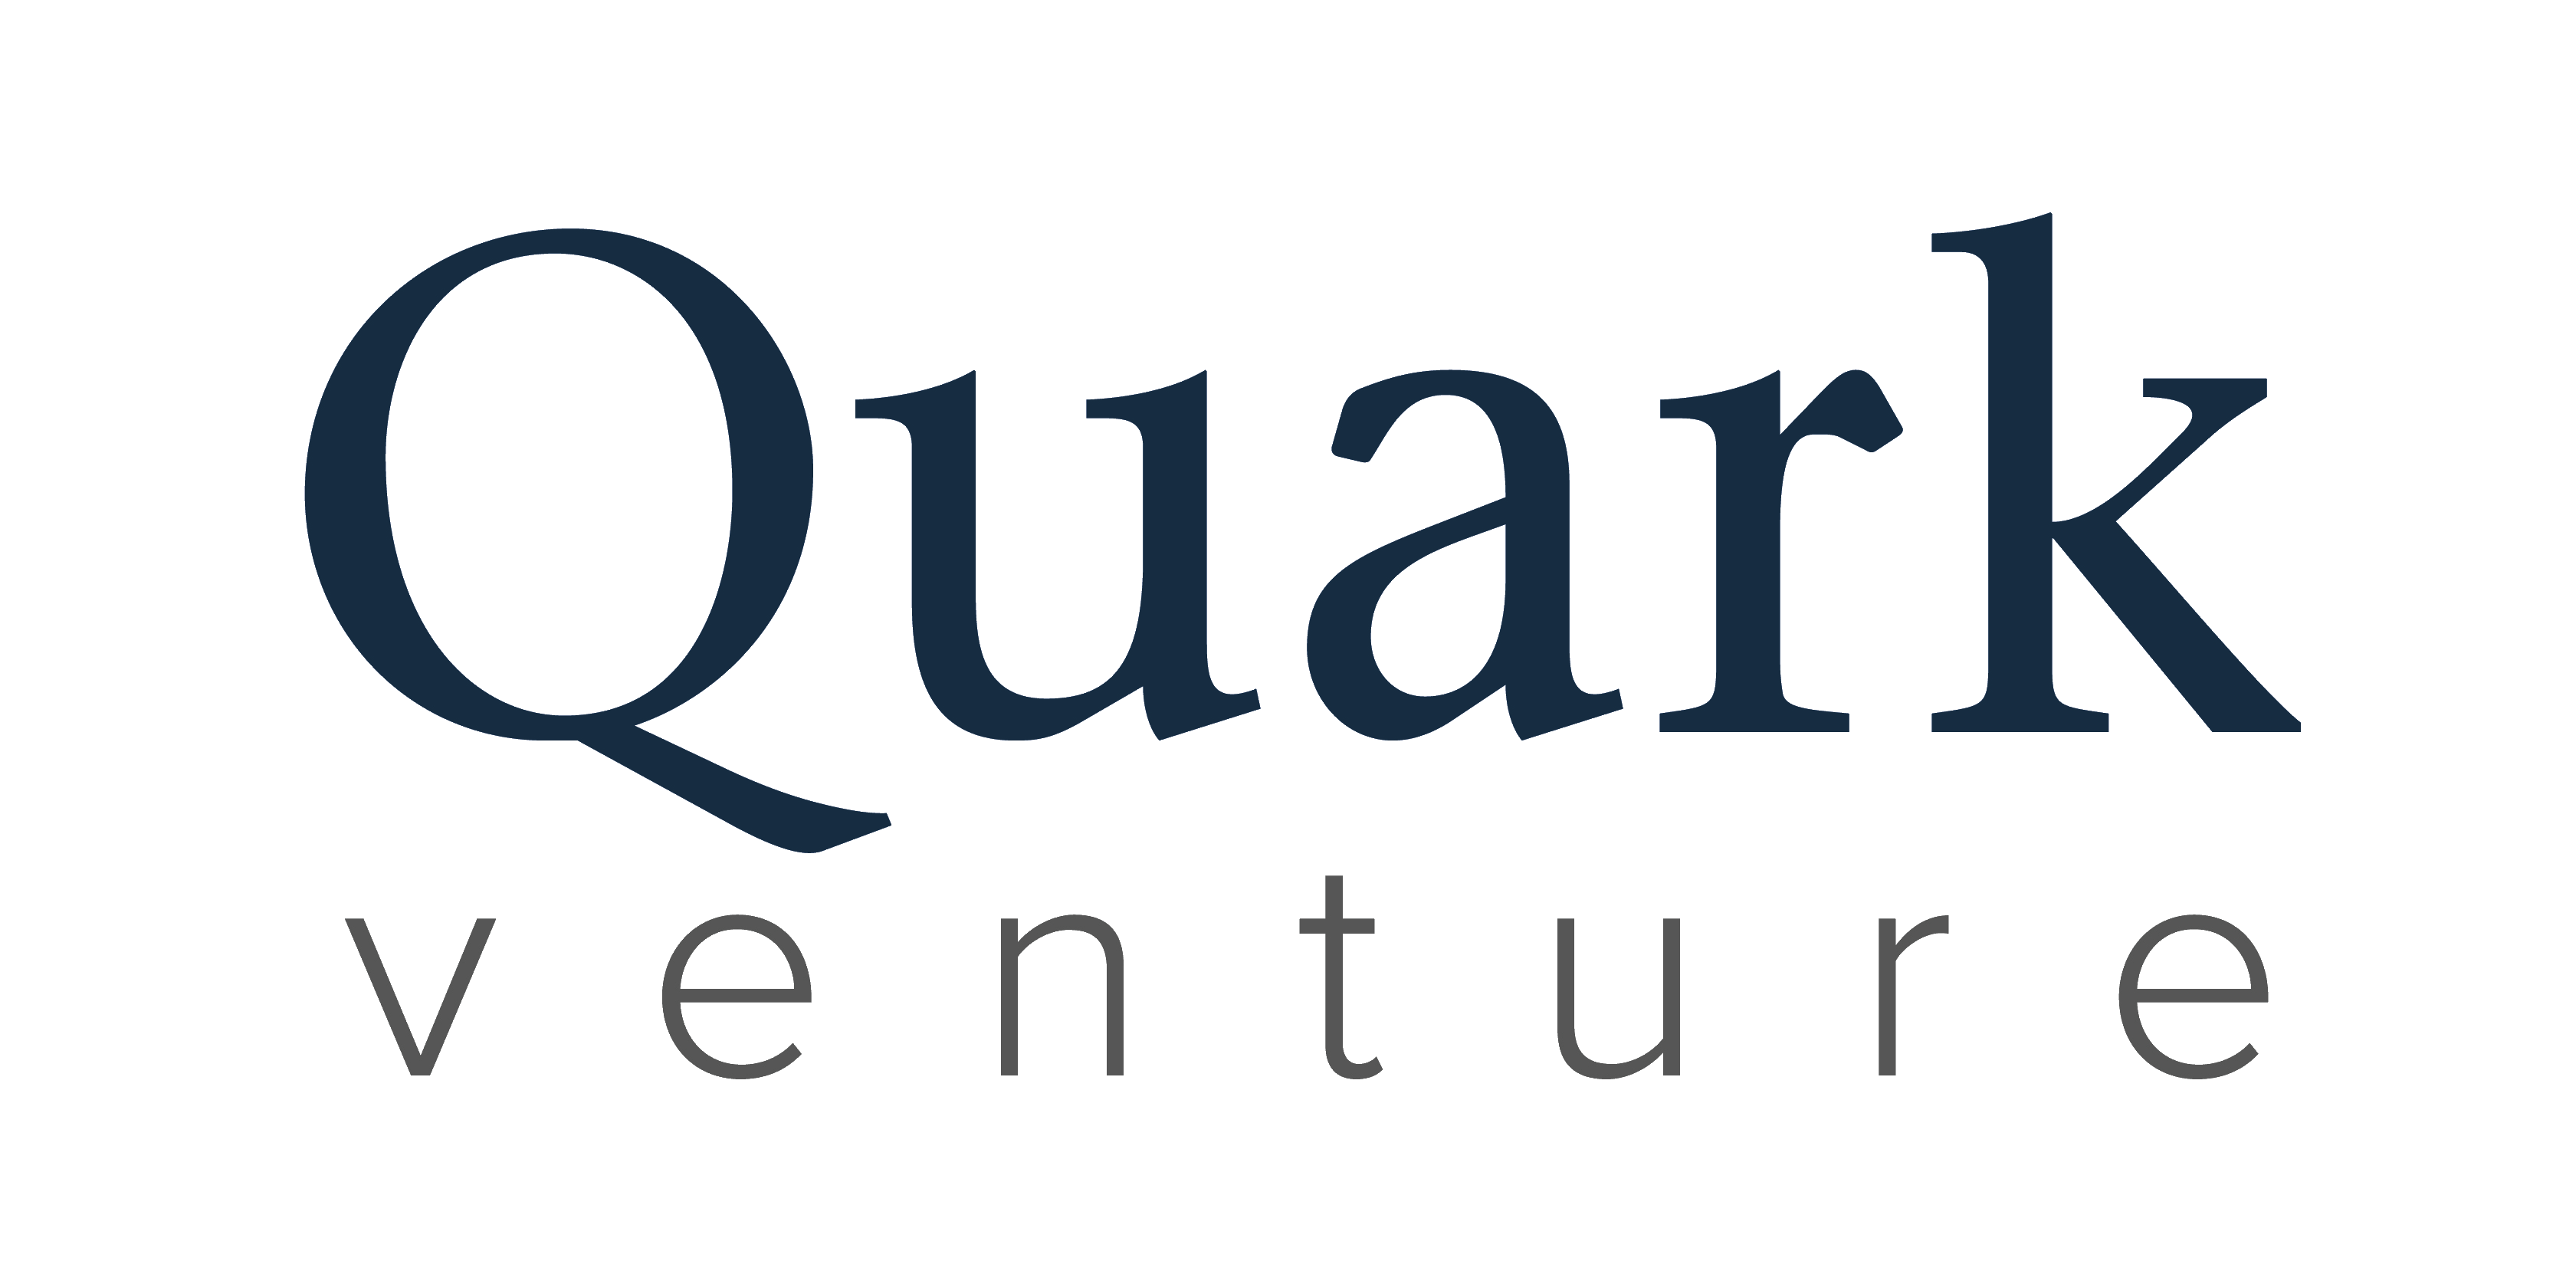 Global Health Sciences Fund (Quark Venture LP and GF Securities) Participates in $22 Million Series C Preferred Stock Financing in Raziel Therapeutics for Development of an Orphan Drug Treating Fat Disorders